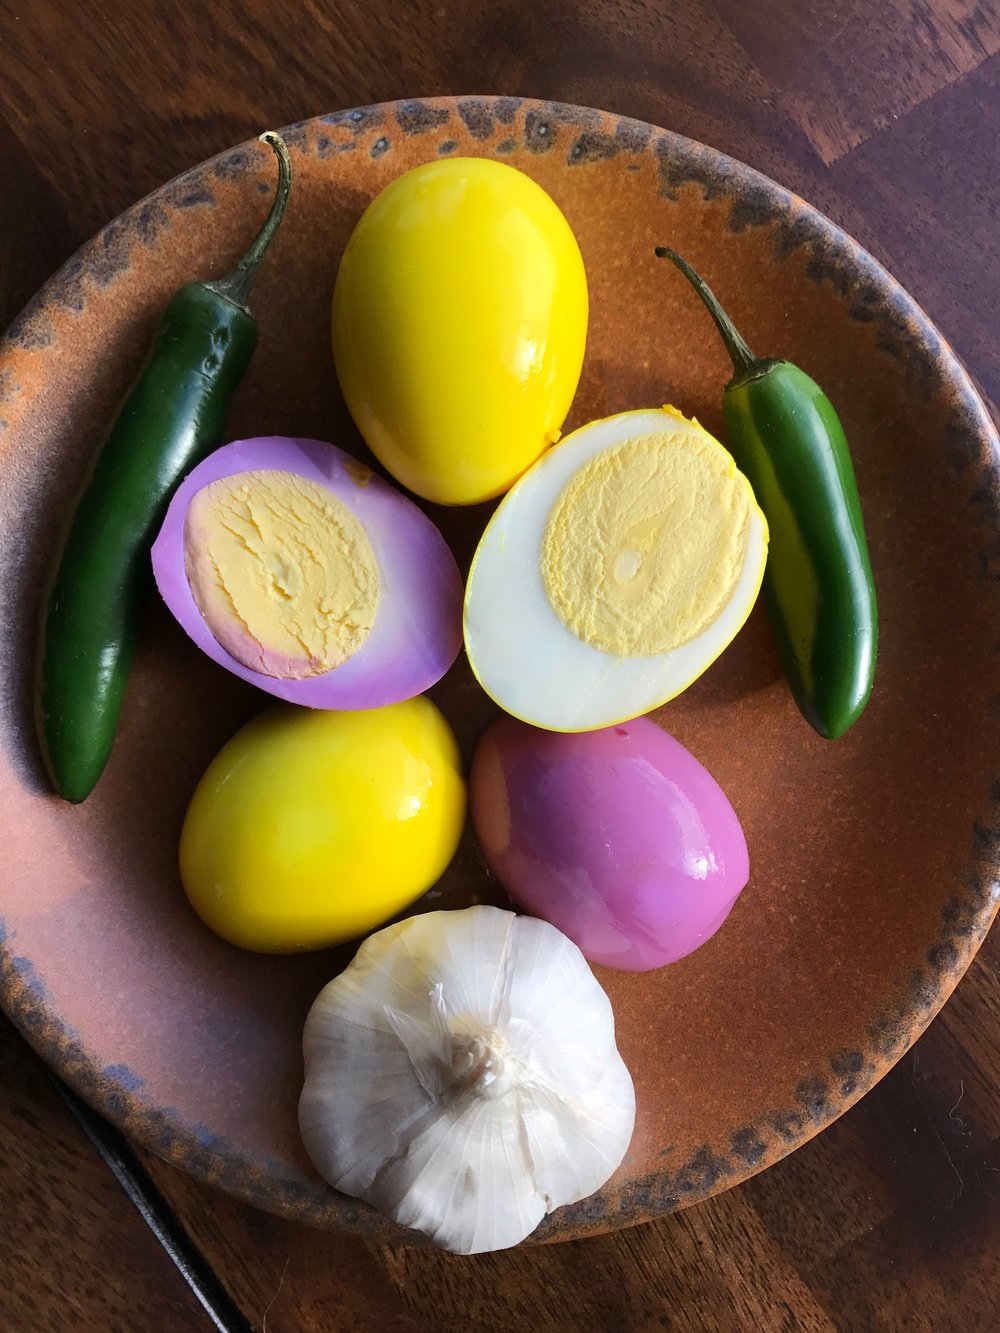 Aren't these pickled eggs just gorgeous? They are almost too pretty to eat! :-)